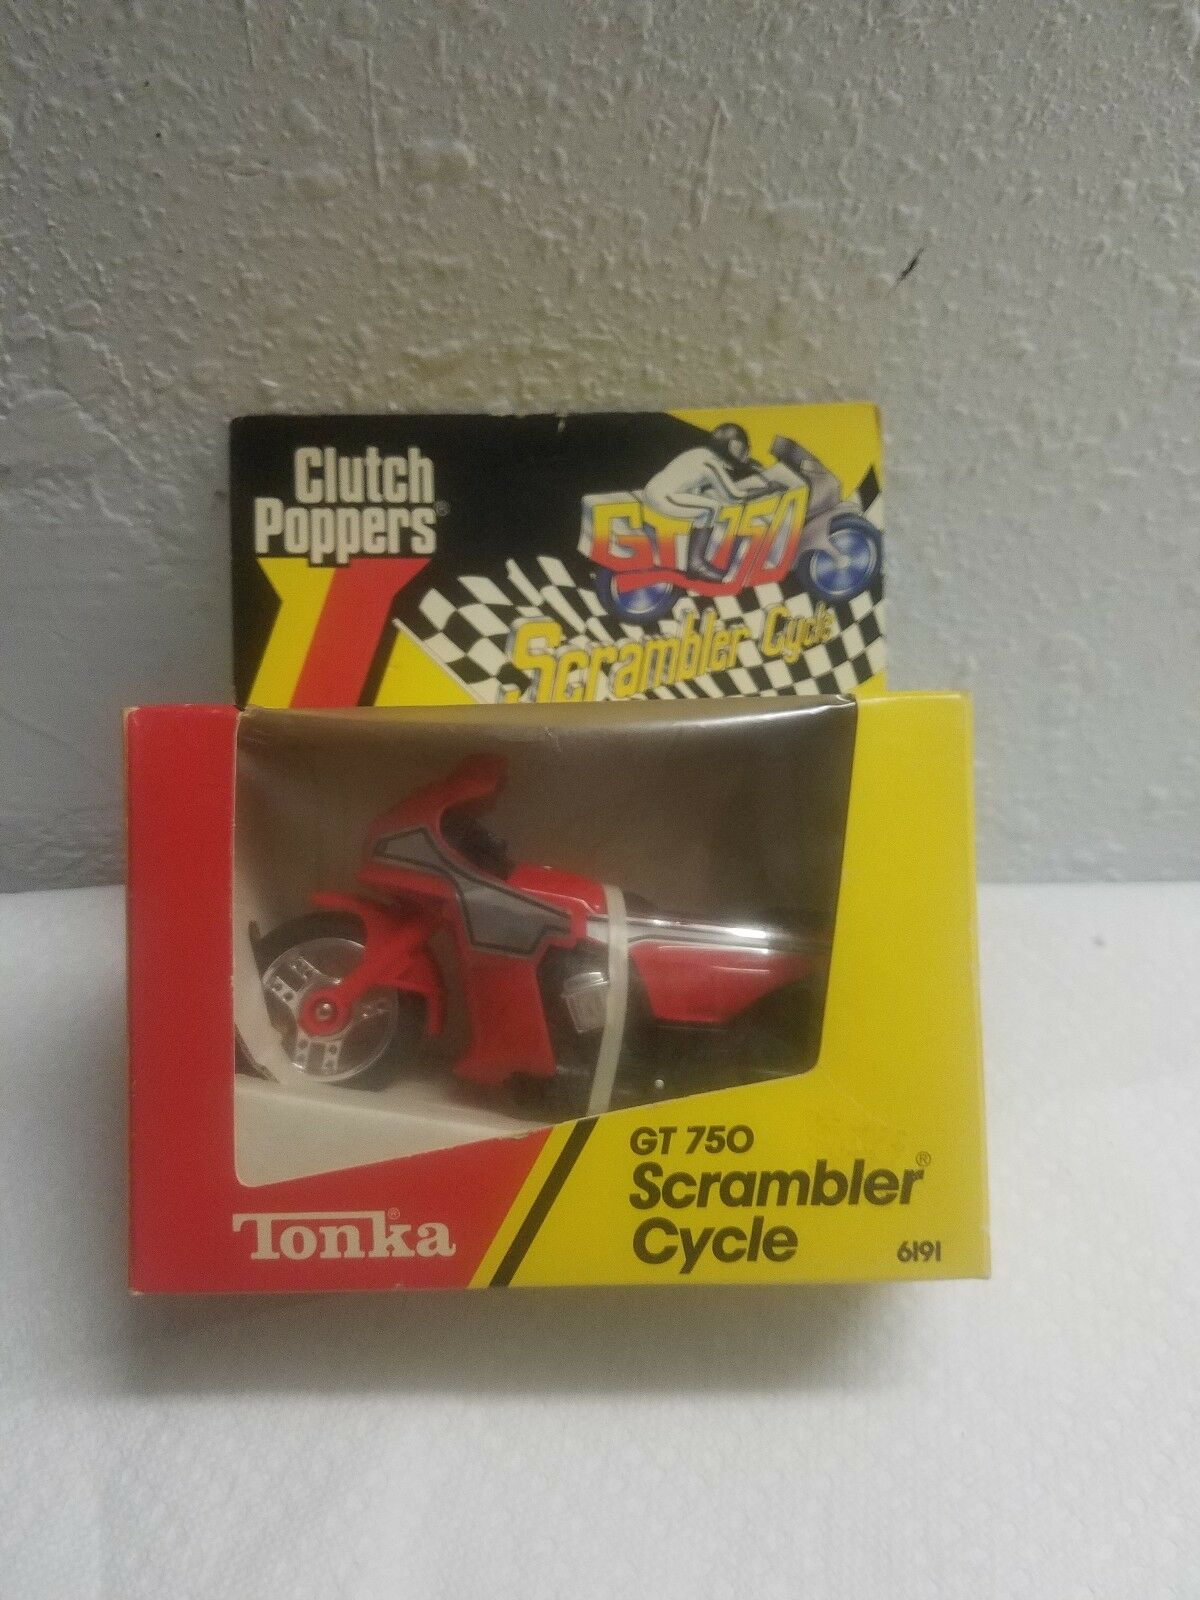 1984 Clutch Poppers Gt 750 Scrambler Cycle No. 6191 (RARE ) Hard to find